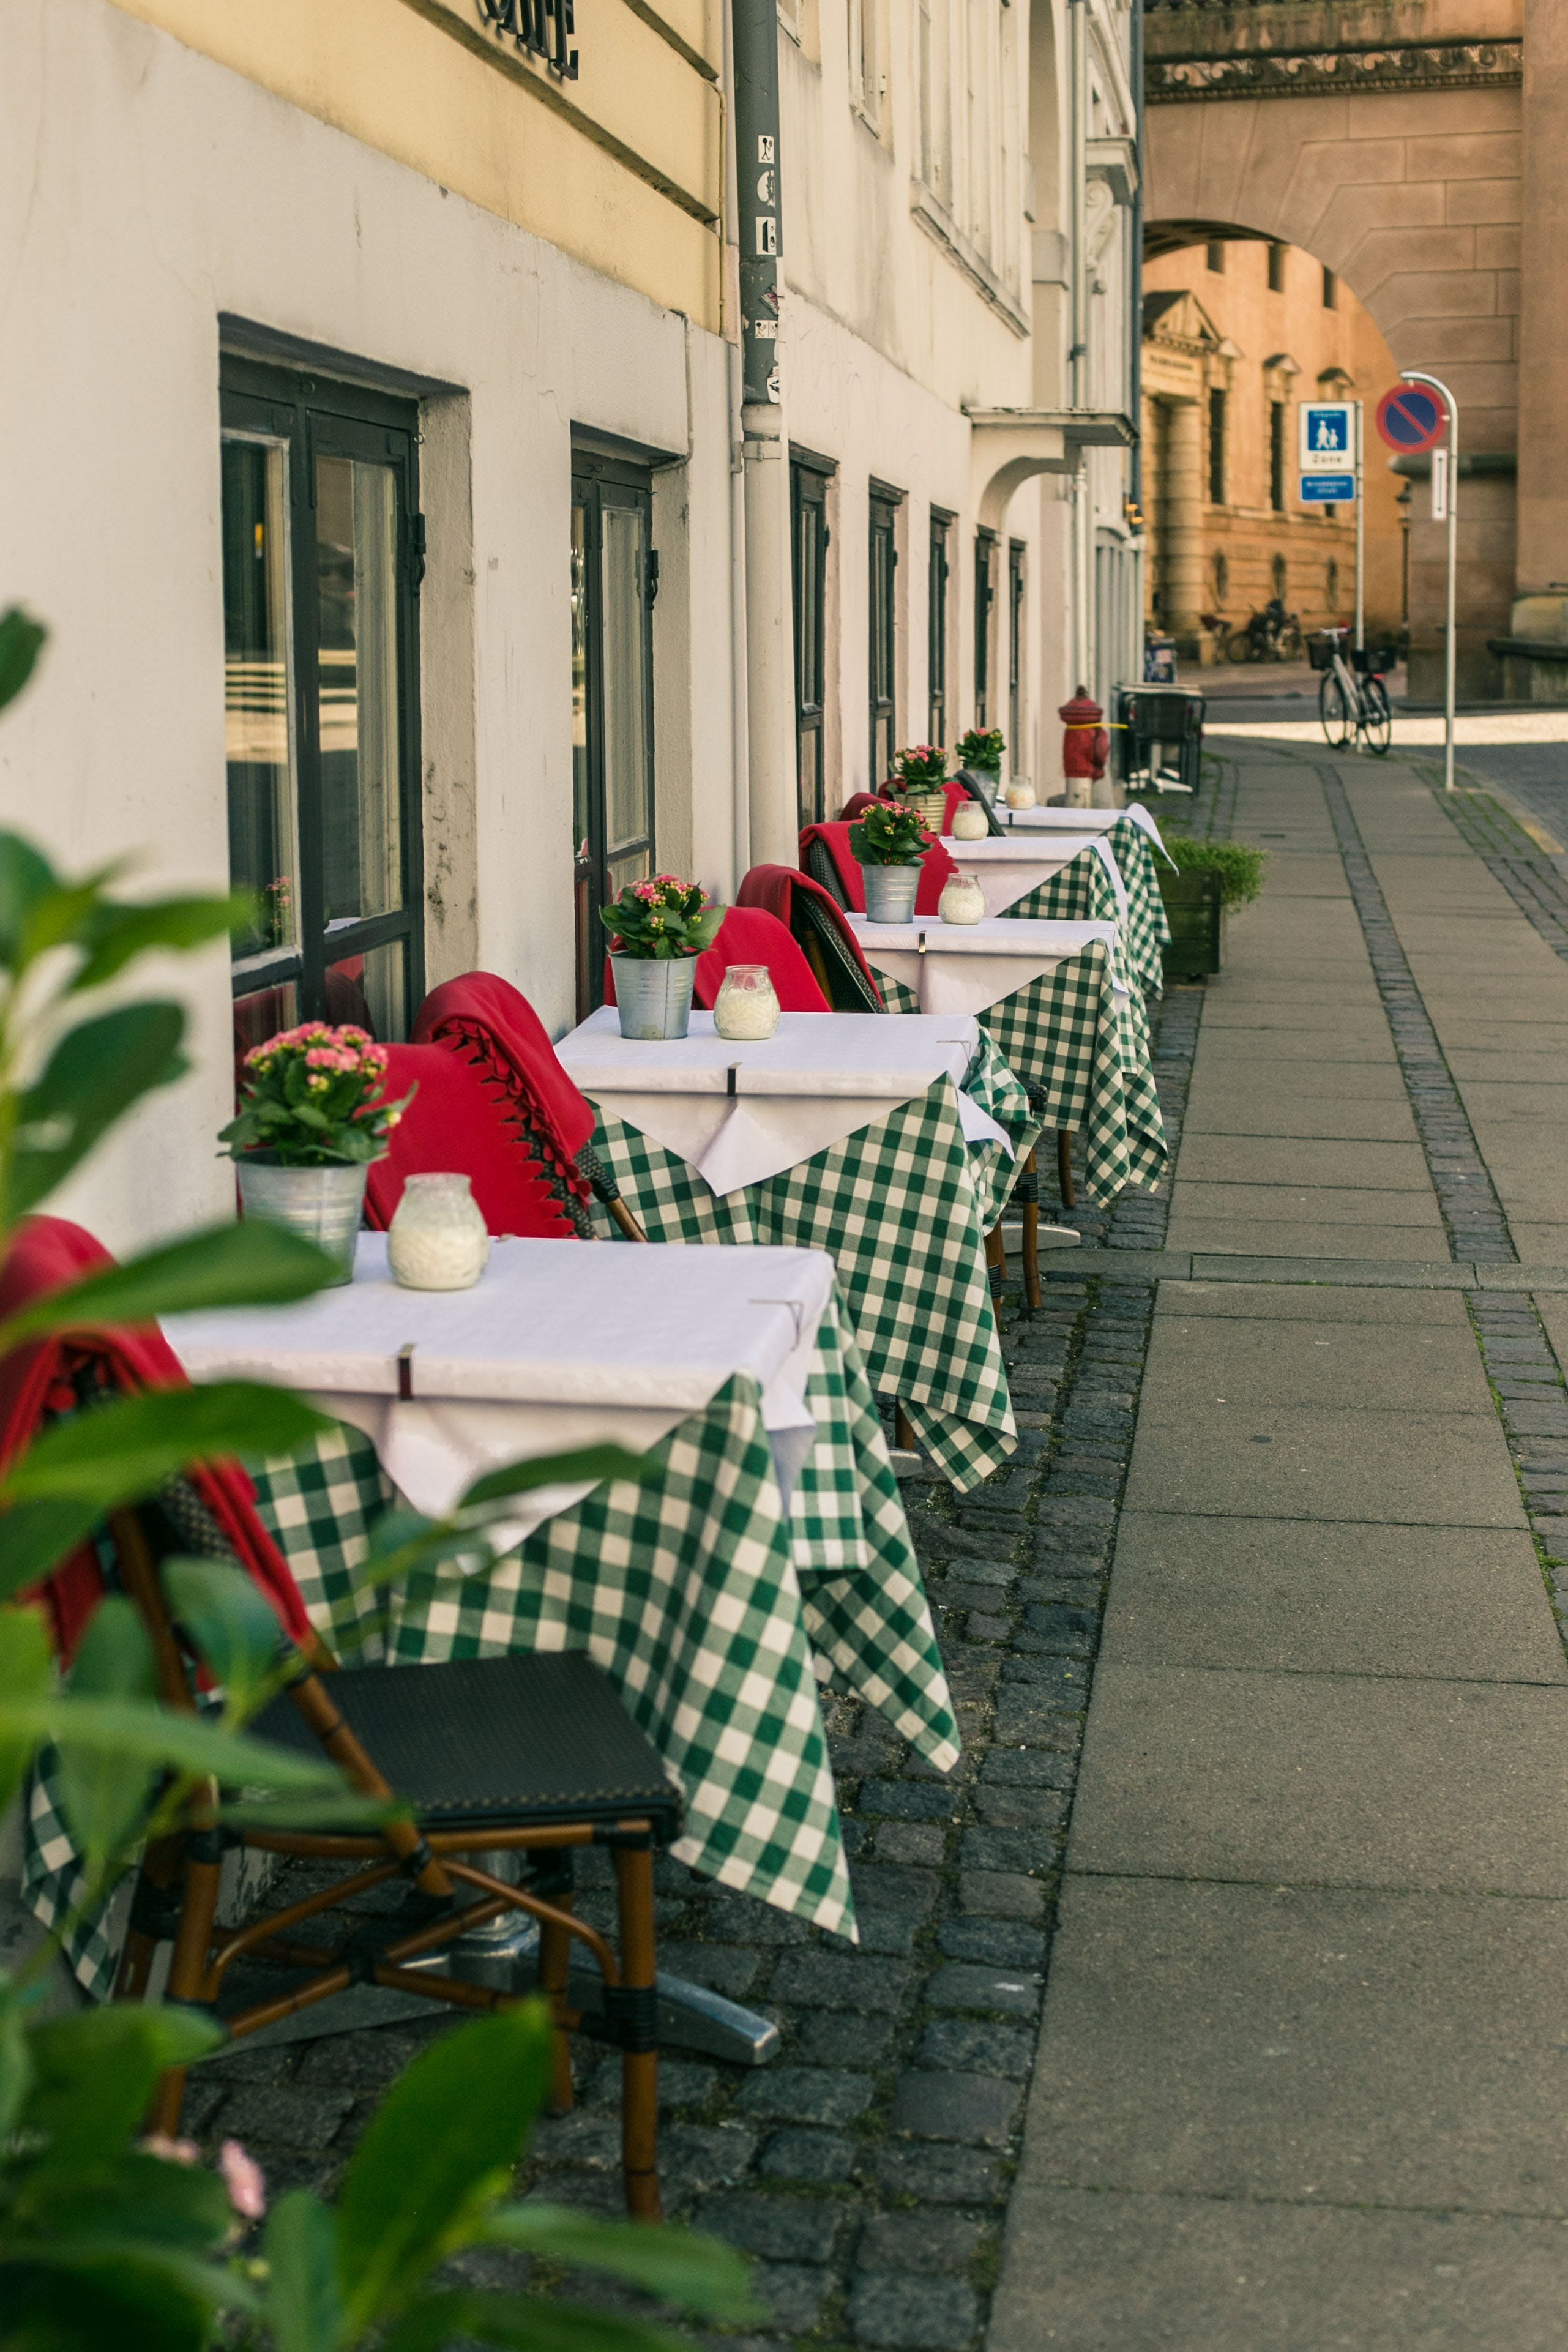 Dining Tables Outside The Restaurant